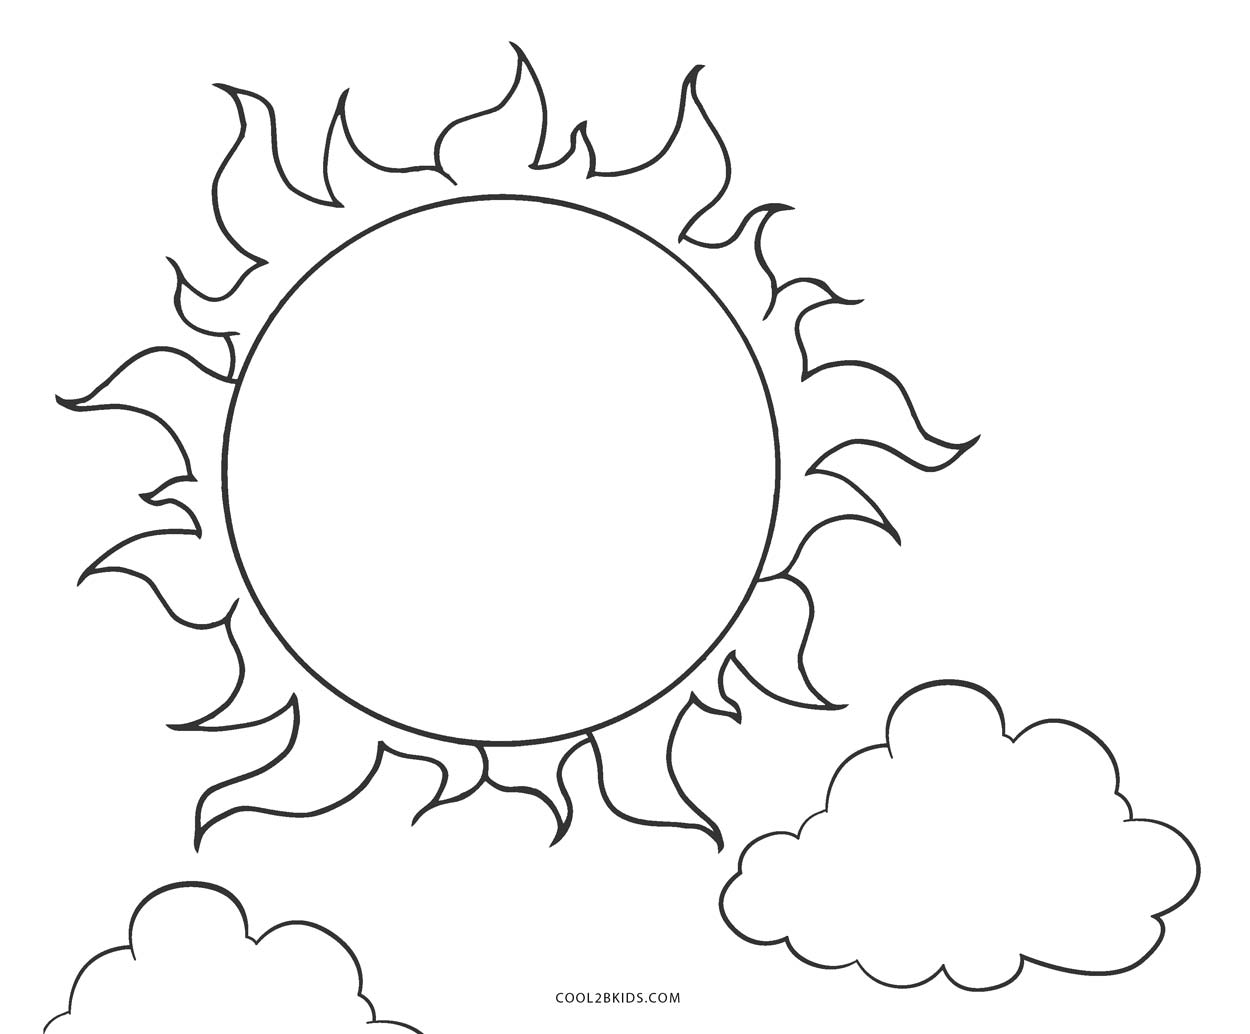 New Design Ideas Coloring Pages Tumblr